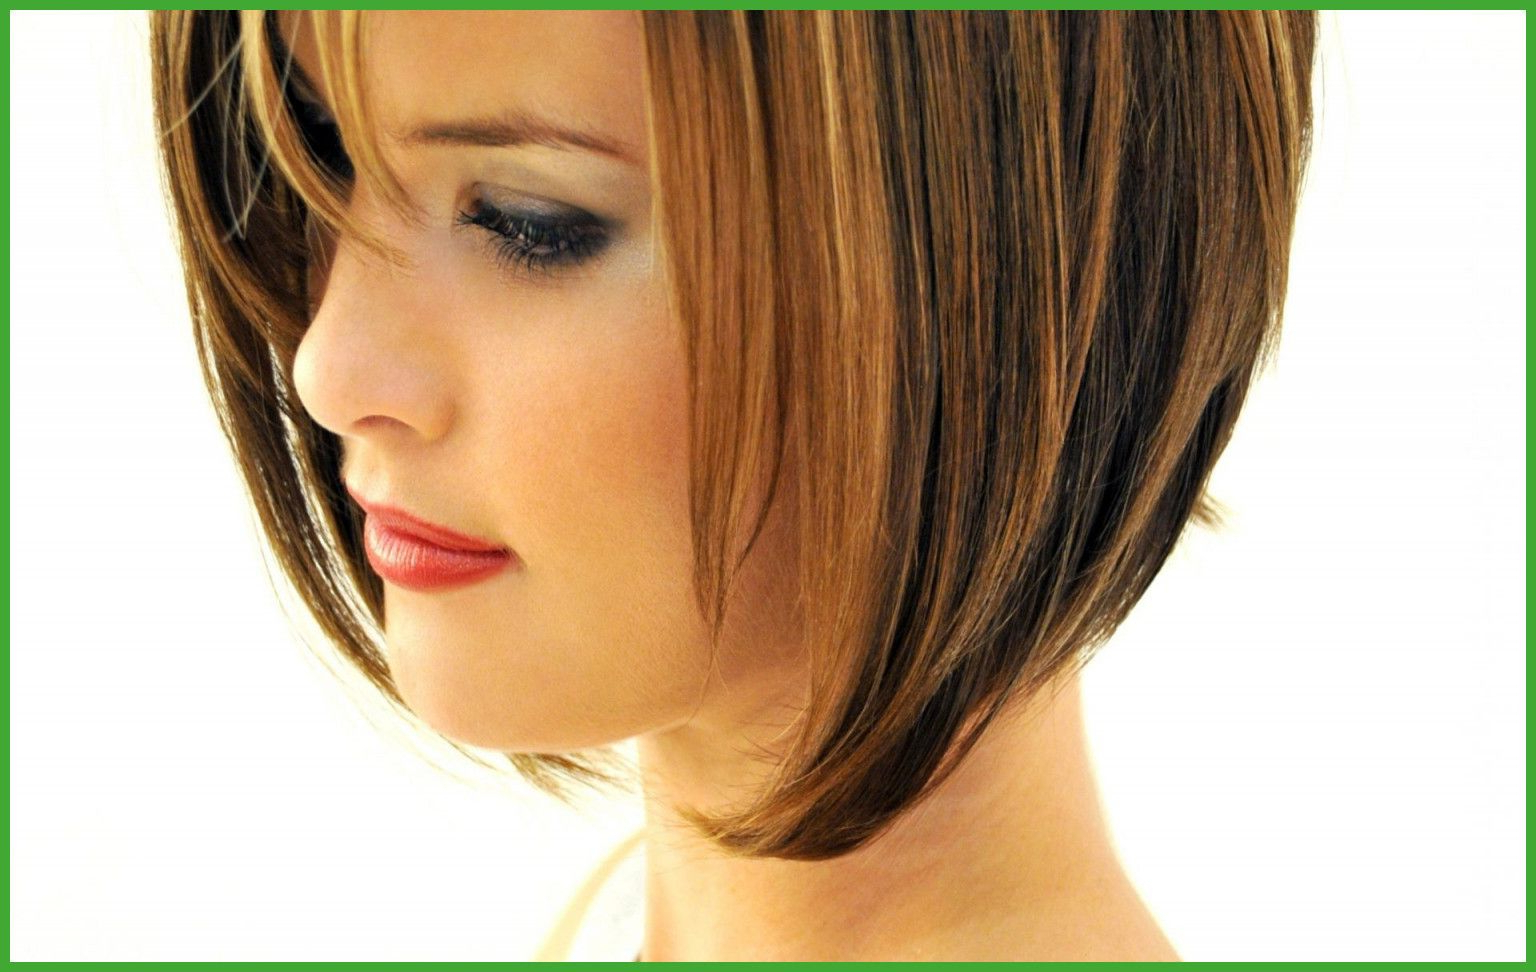 Medium Haircuts For Fine Hair Layered Bob Haircuts Stock Regarding Most Current Short And Medium Layers Haircuts For Fine Hair (View 14 of 20)